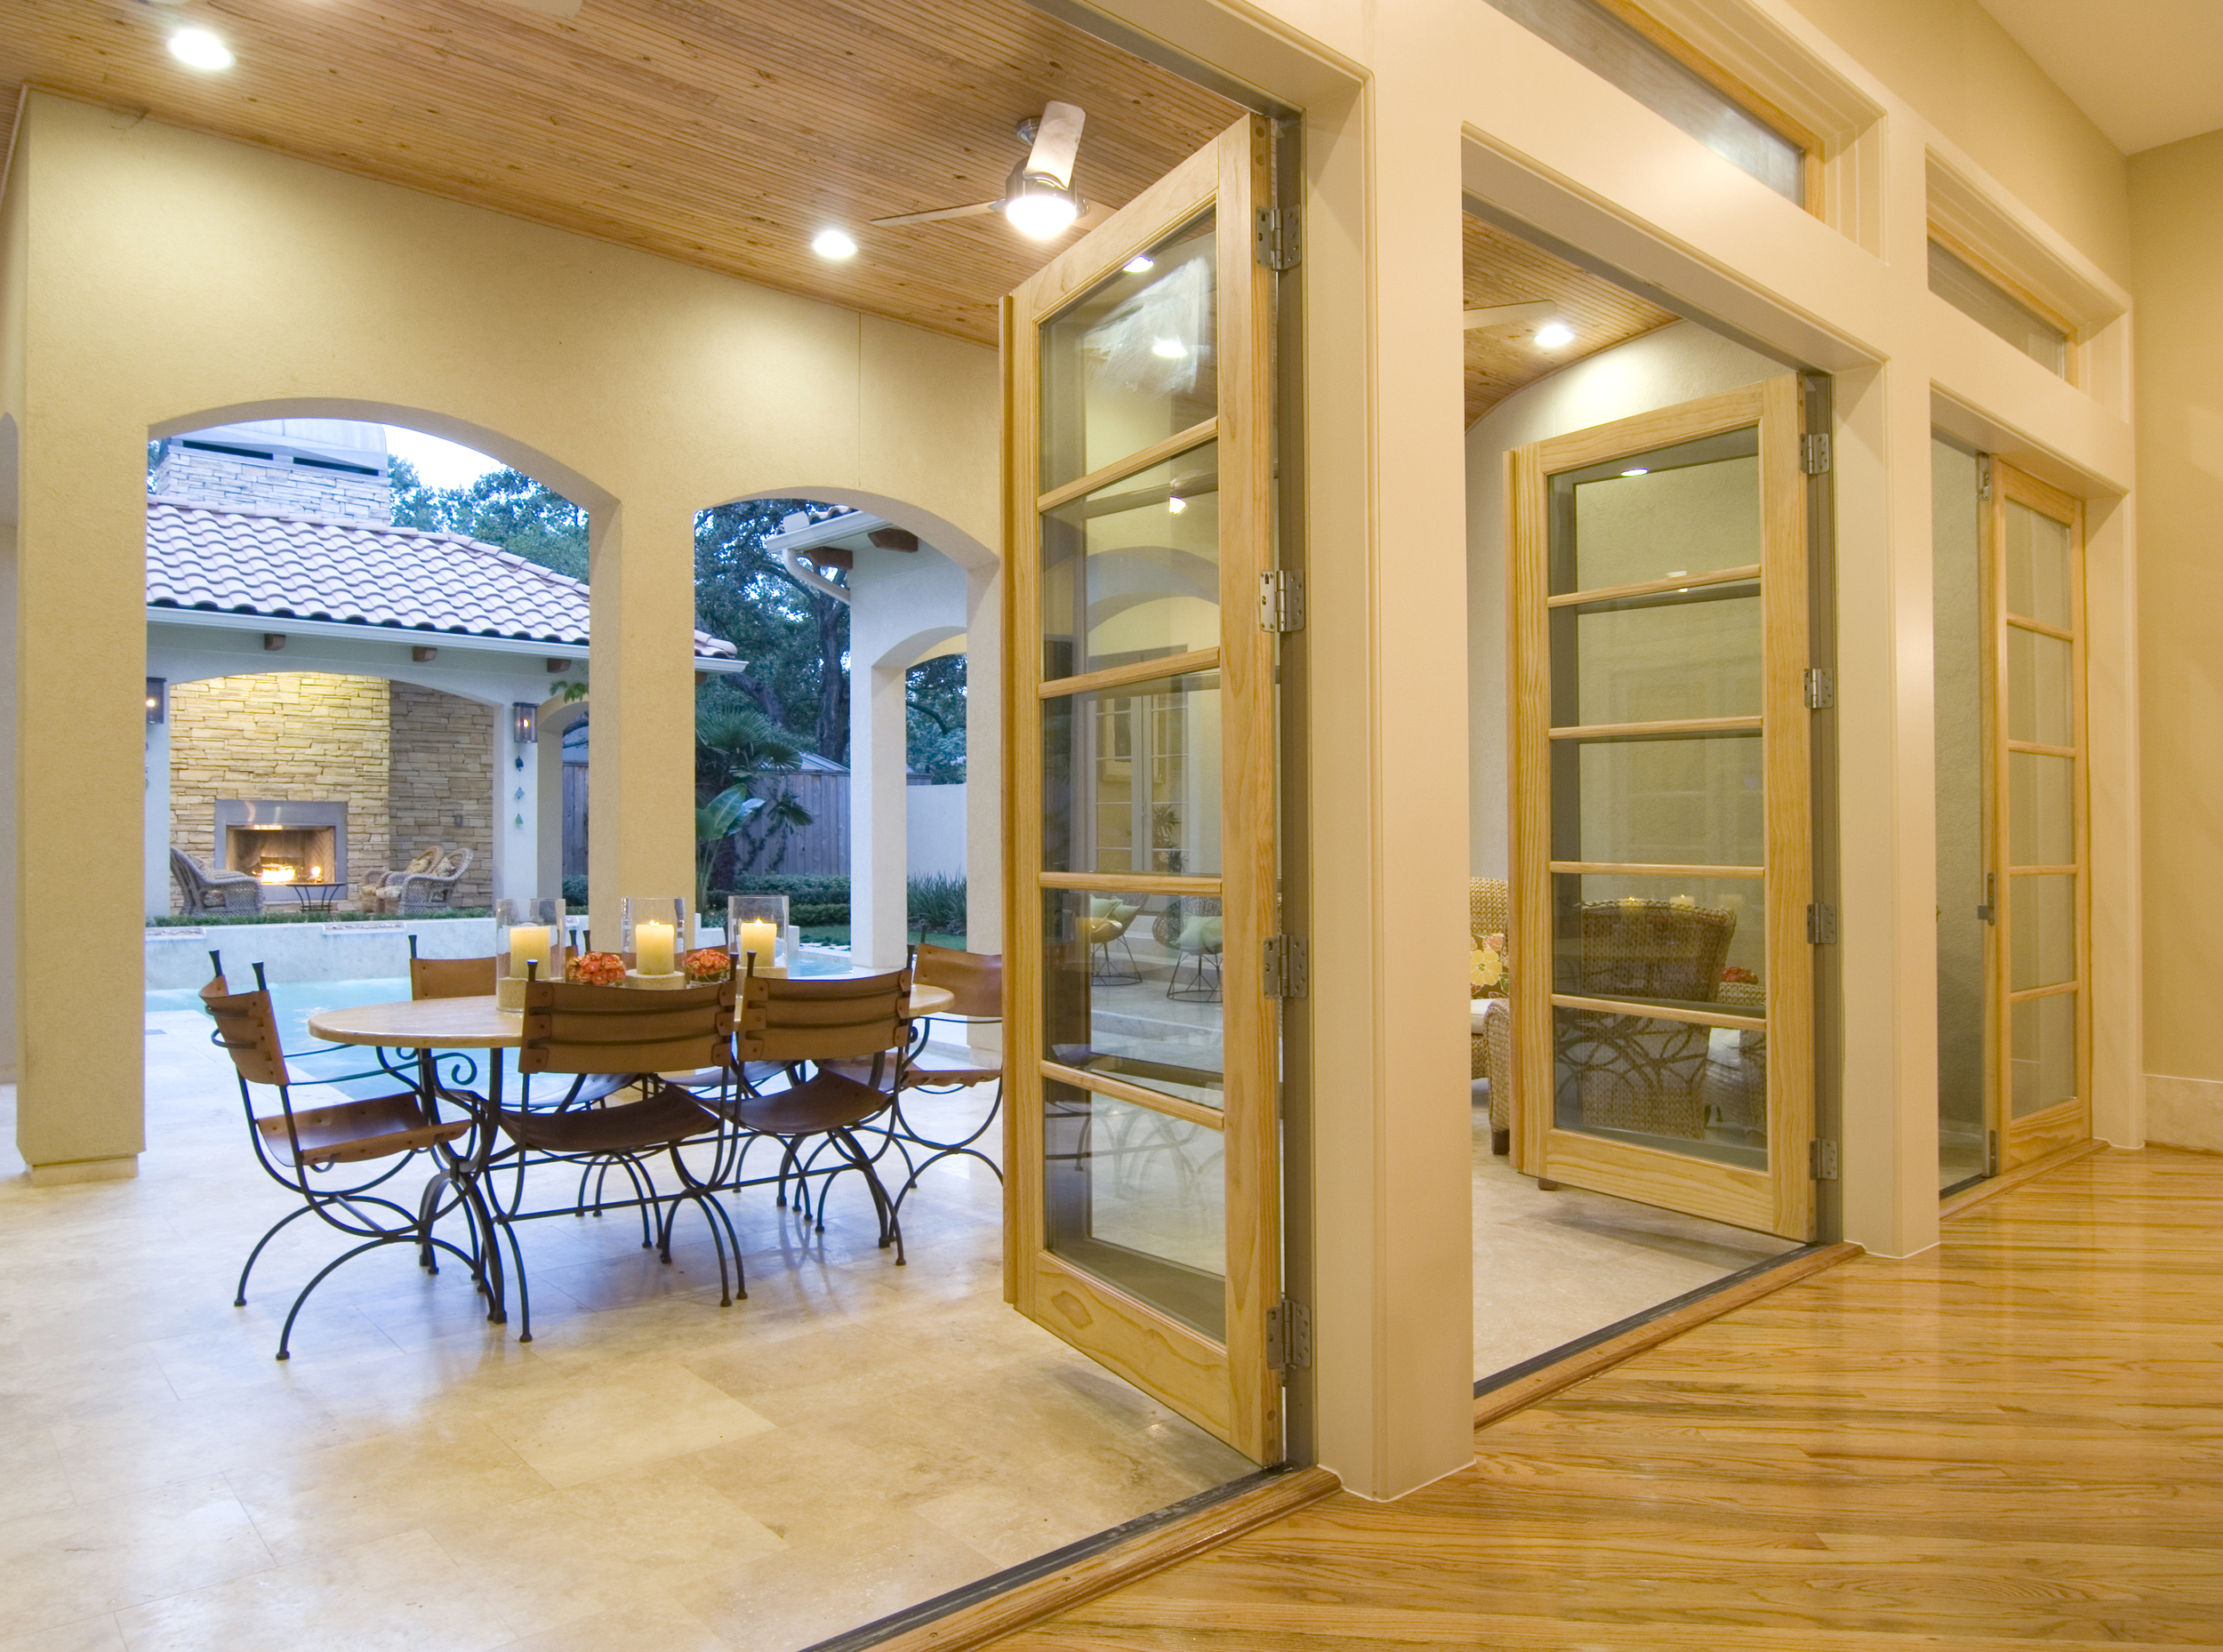 Meadow Lake Lane - Doors Opening from Gallery onto Patio:Veranda2.jpg